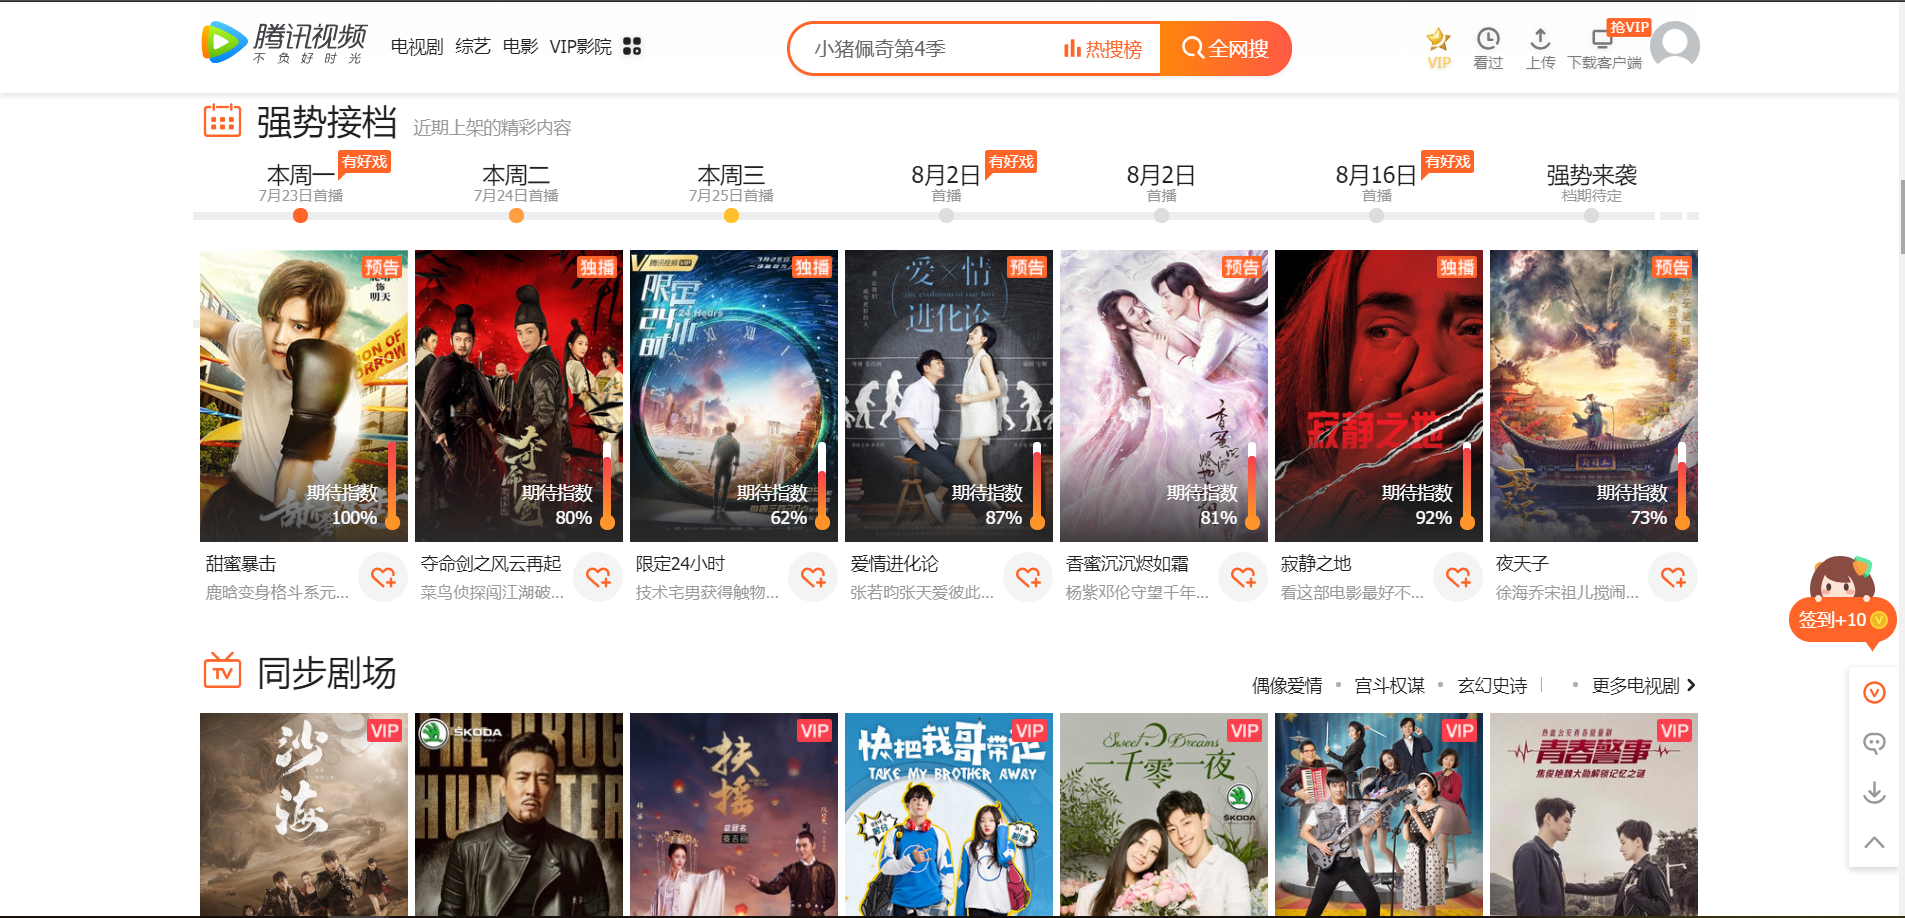 tencent china VOD platform